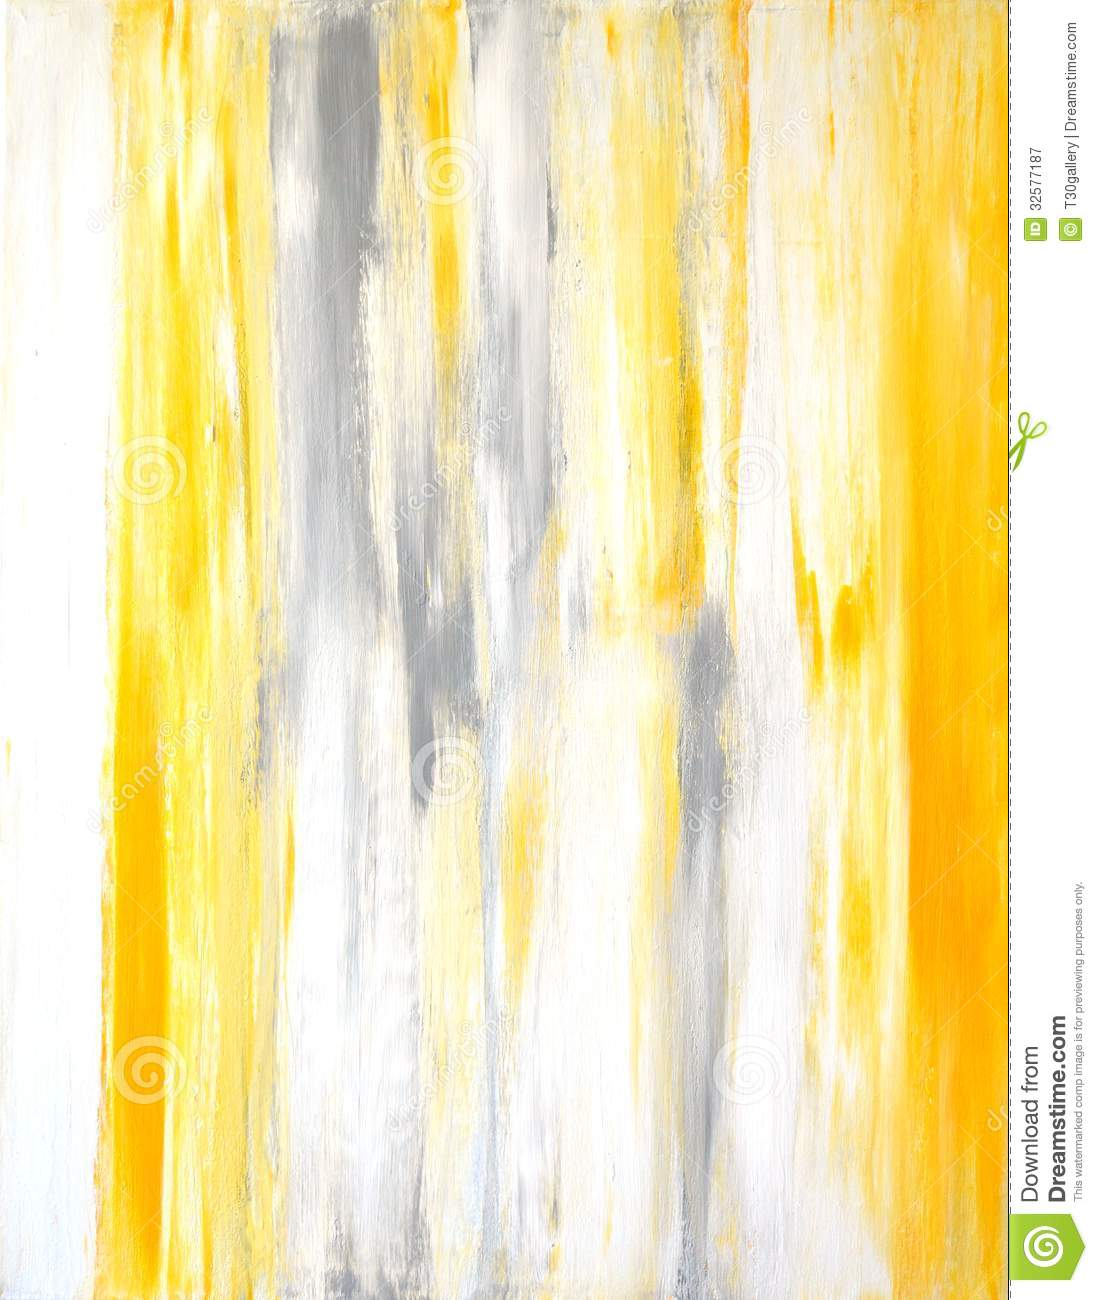 Grey and yellow abstract art painting royalty free stock for Yellow and gray paint